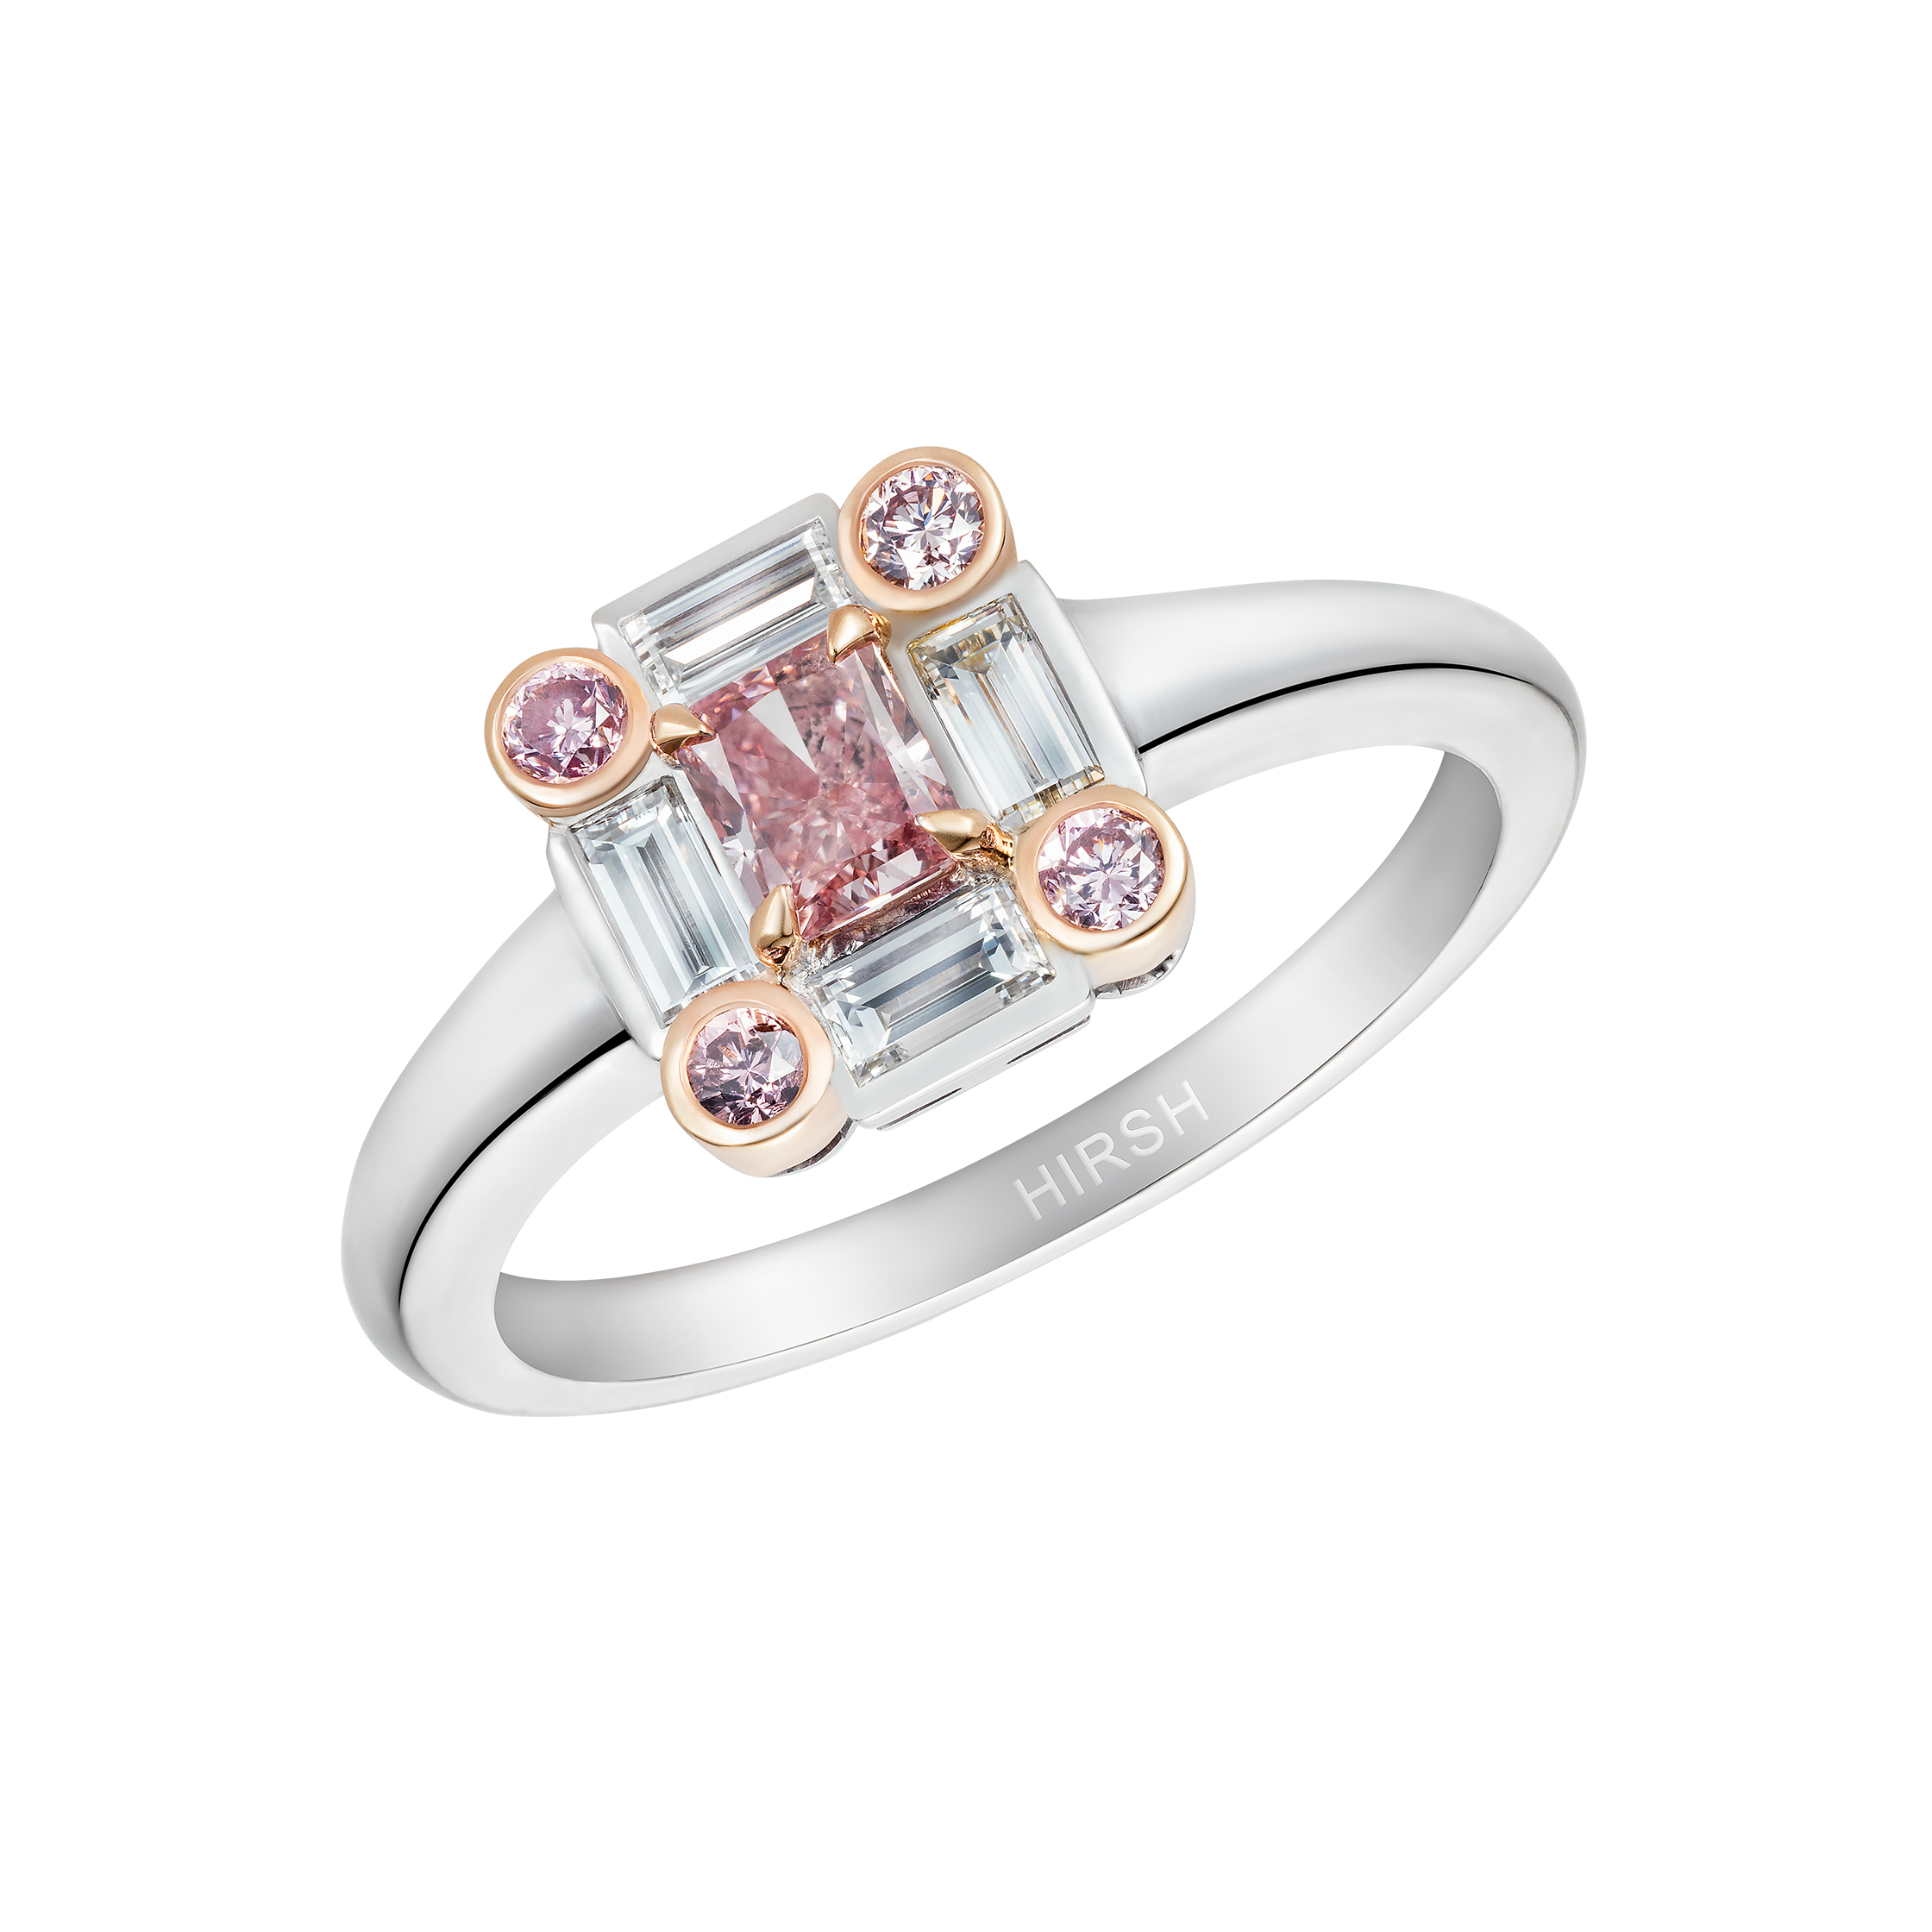 in nl jewellery rg blush rings engagement to shaped infinity glittering that females rose lovely sapphire with styles a all add orange of pink diamond gold gs blog heart romantic ring